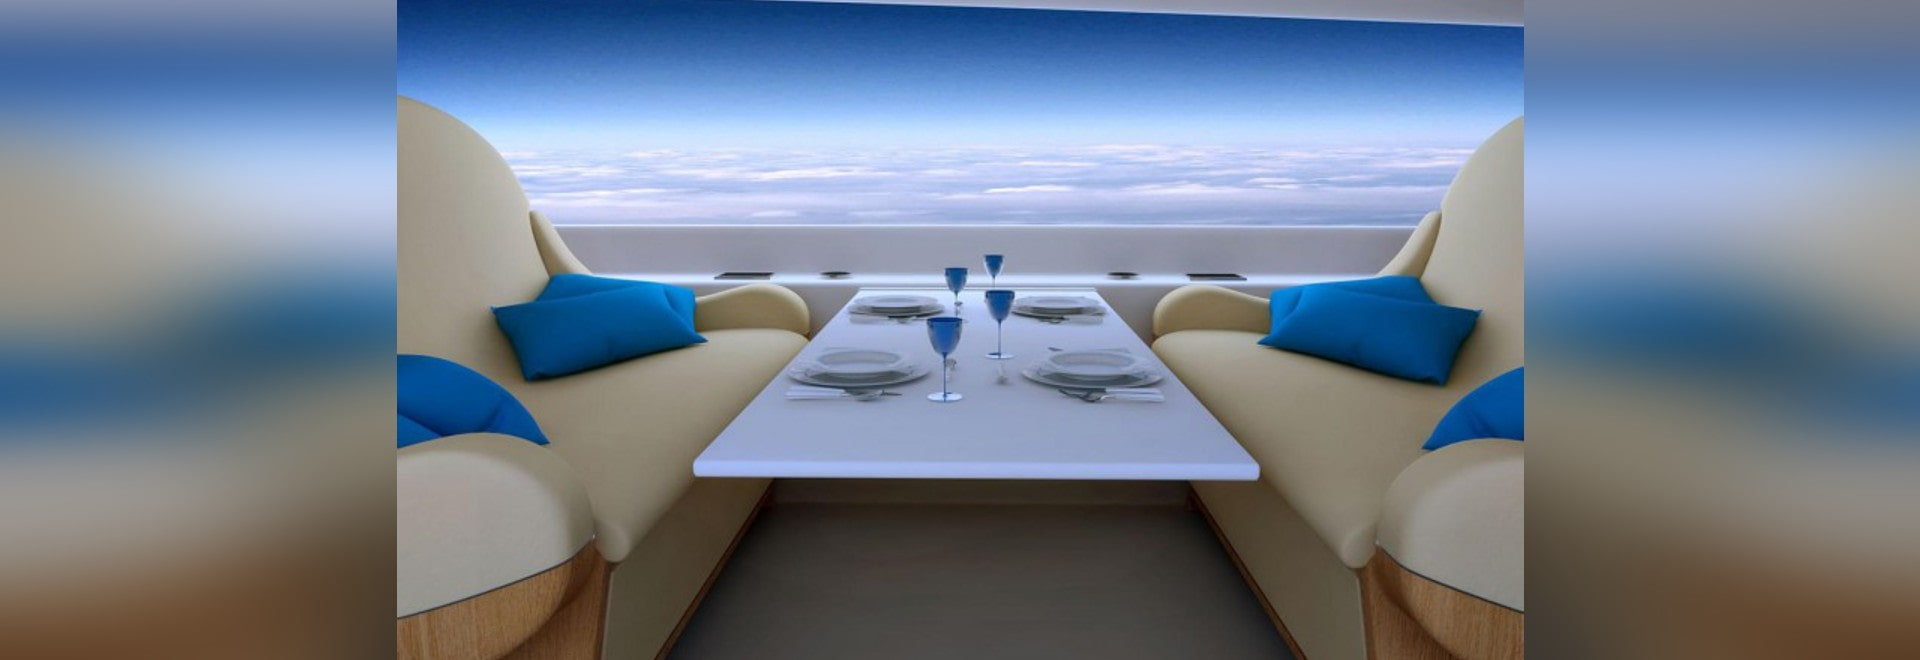 FORGET WINDOWS: SUPERSONIC JET OPTS FOR LIVE-STREAMING PANELS